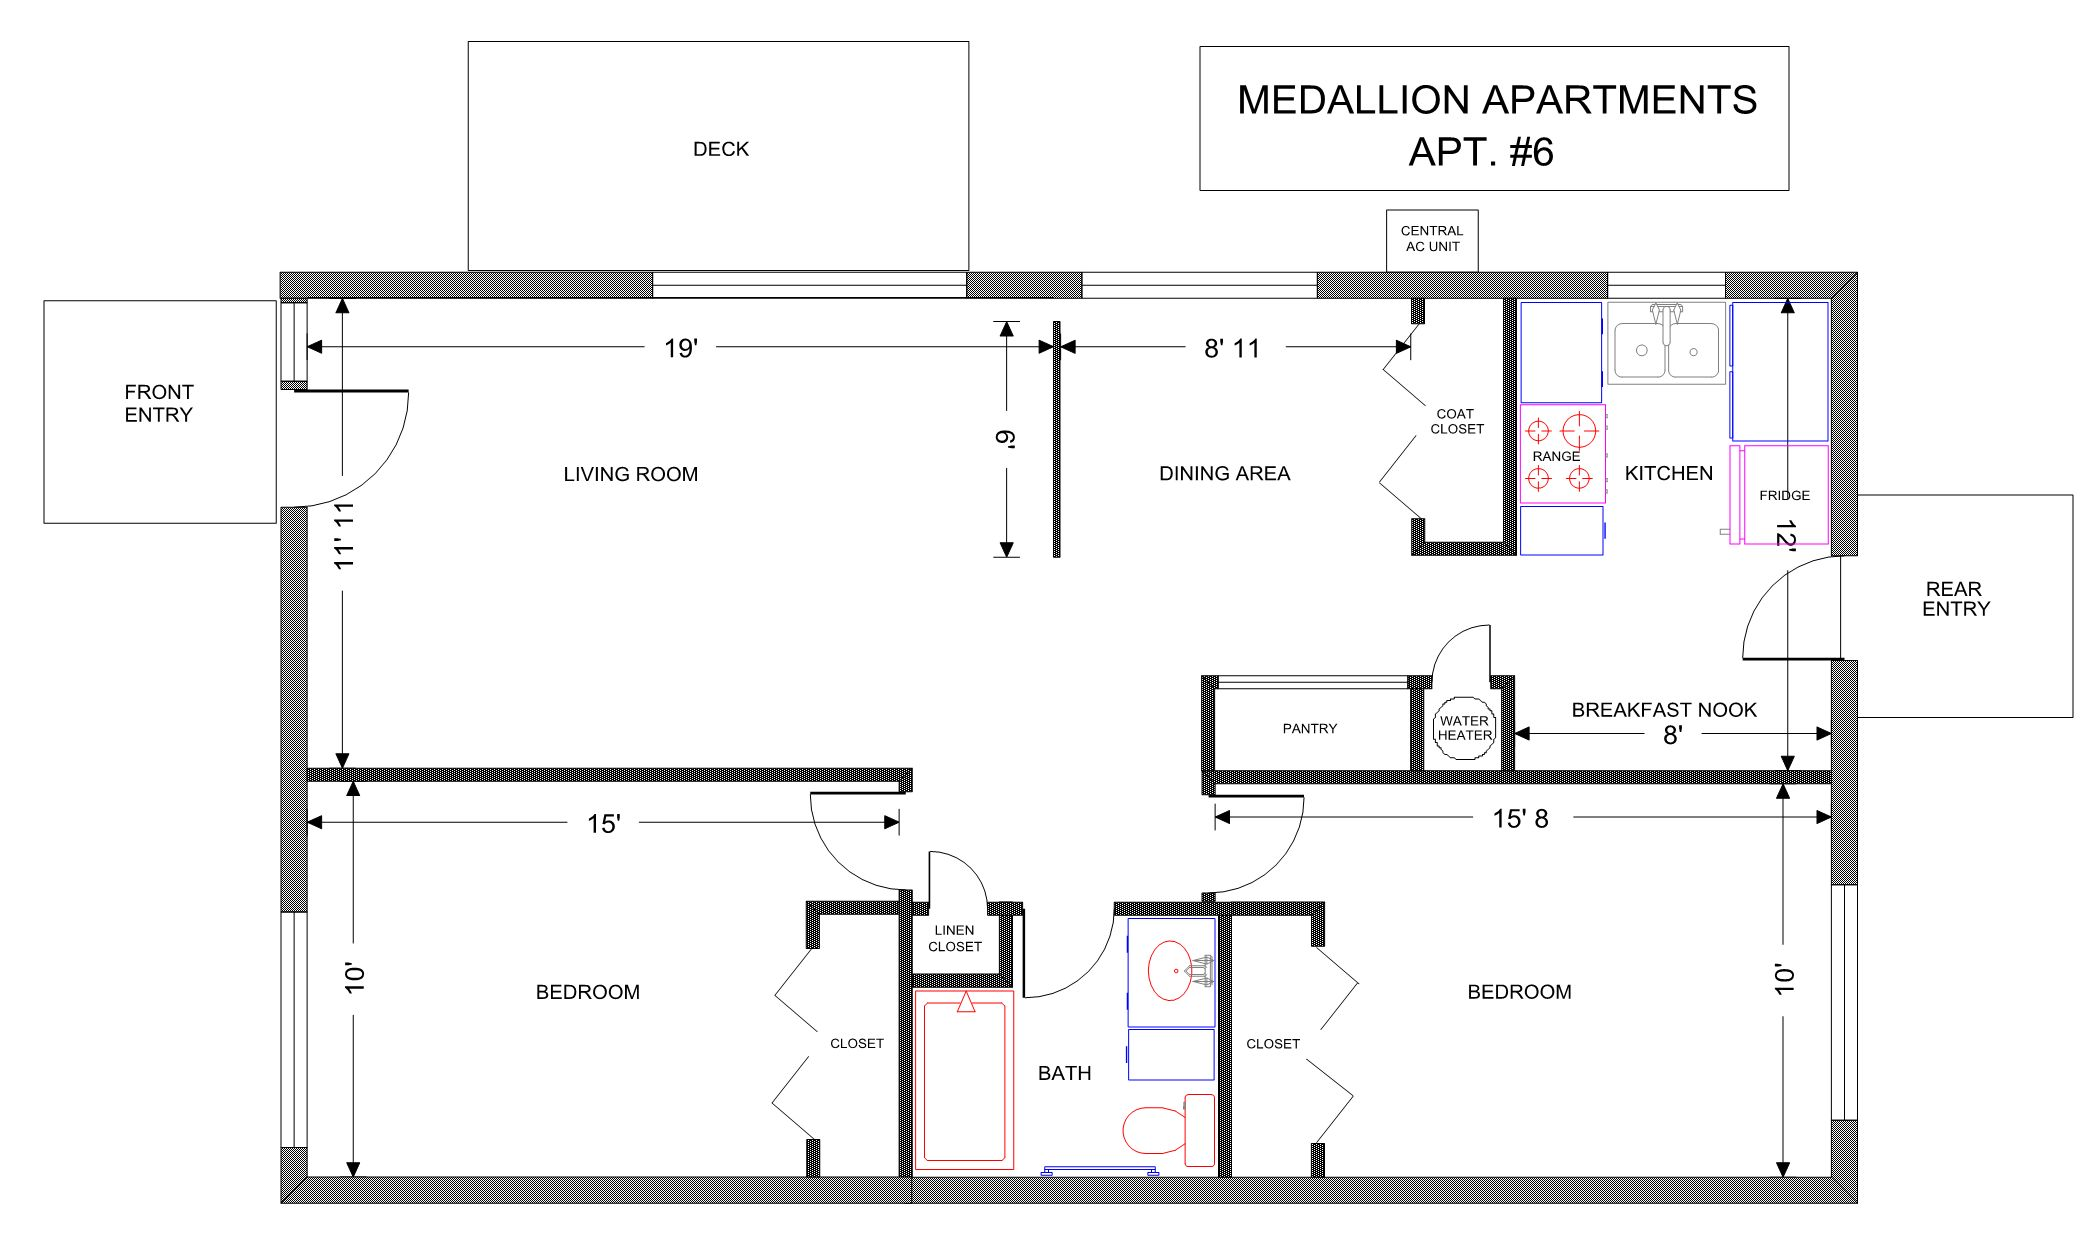 Apt. #6 floor plan